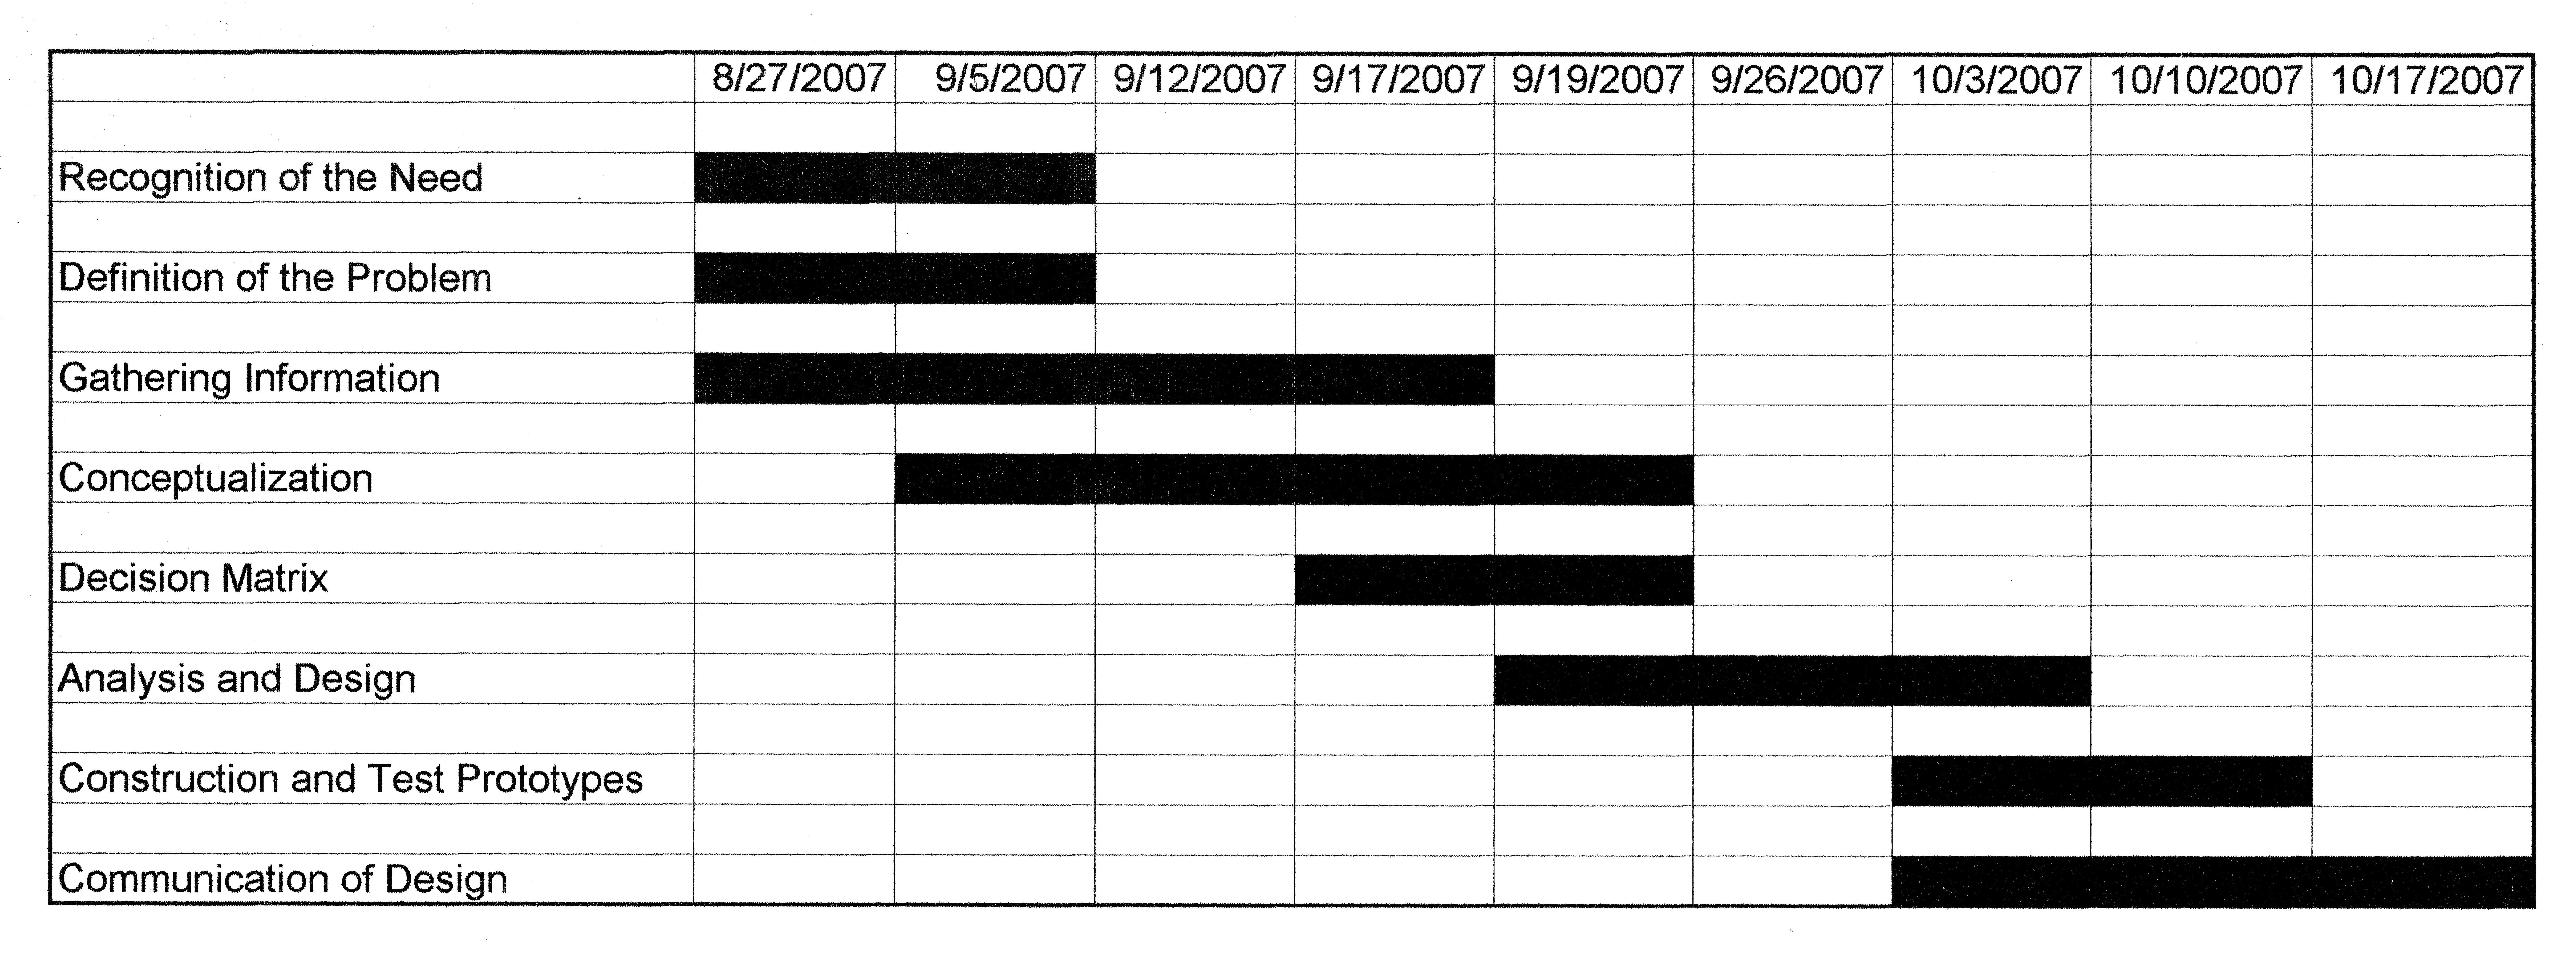 gantt chart restaurant Sampledocumentbywwwdissertationprime-ukcom business plan opening a restaurant in ulaanbaatar, mongolia this is a sample document owned by actually the restaurant is going to provide mongolian style hospitality for food of customer's choice from any cuisine 35 table 21 gantt chart.